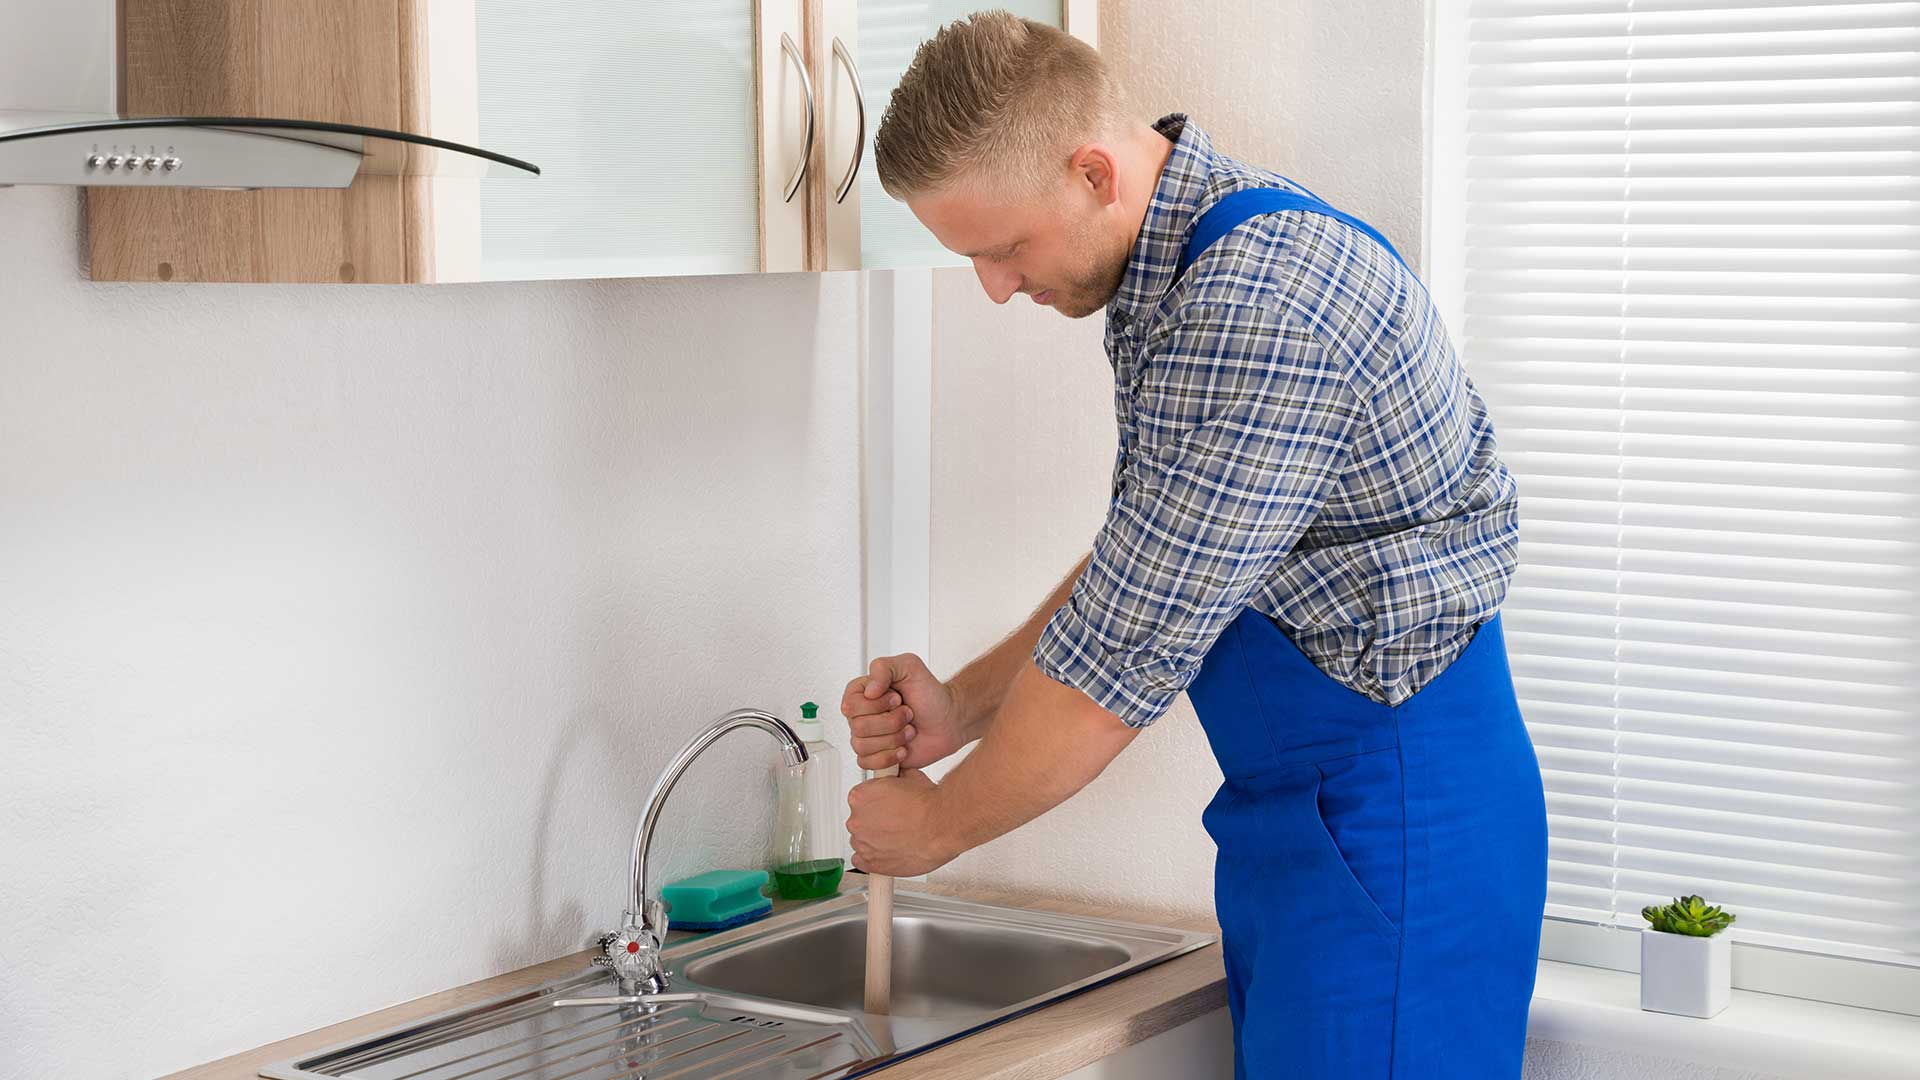 8 most common causes of clogged drains